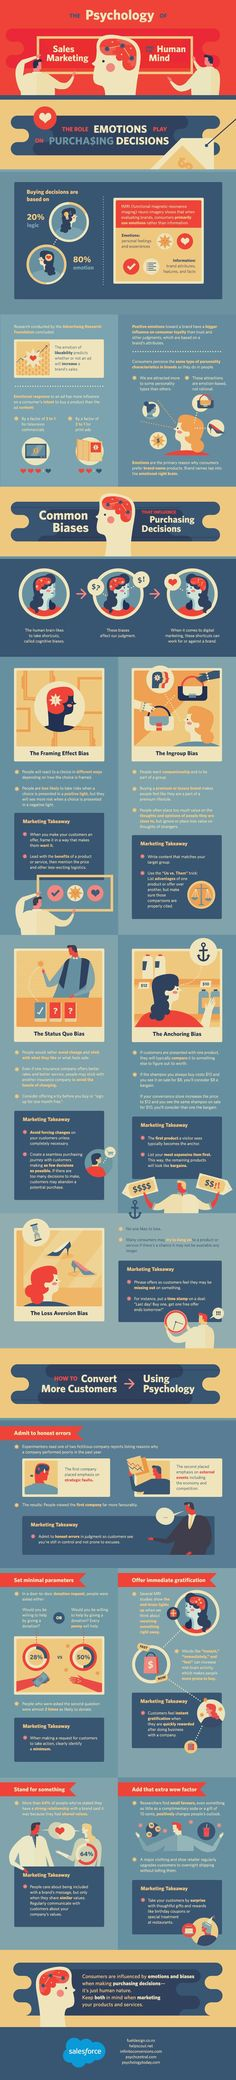 The Psychology of Sales Marketing and the Human Mind #infographic #Sales…